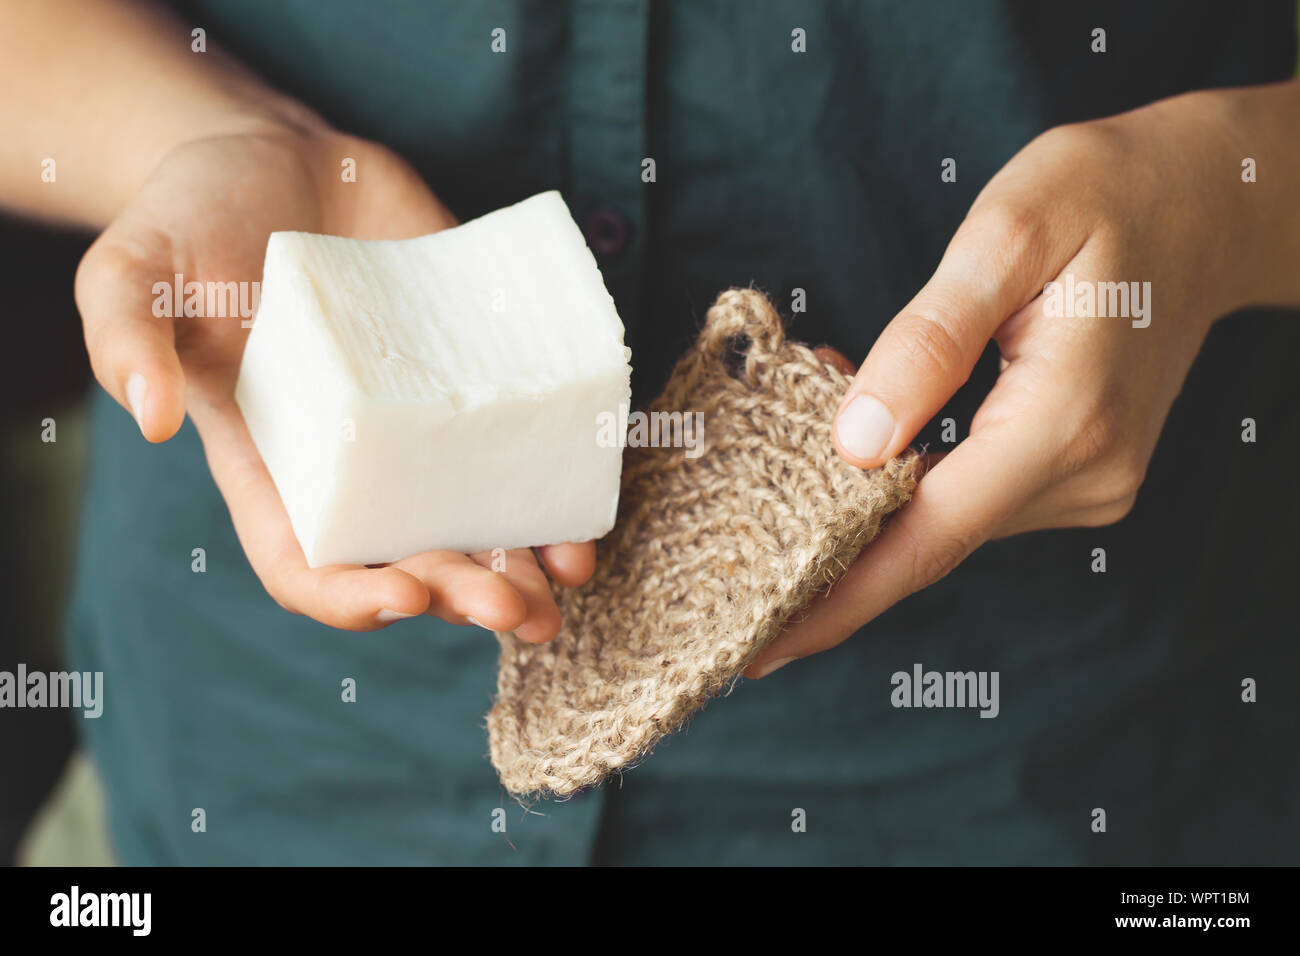 Eco-friendly cleaning kit. Organic soap and jute washcloth in the woman's hand. Zero waste concept, plastic-free, eco-friendly shopping, vegan Stock Photo